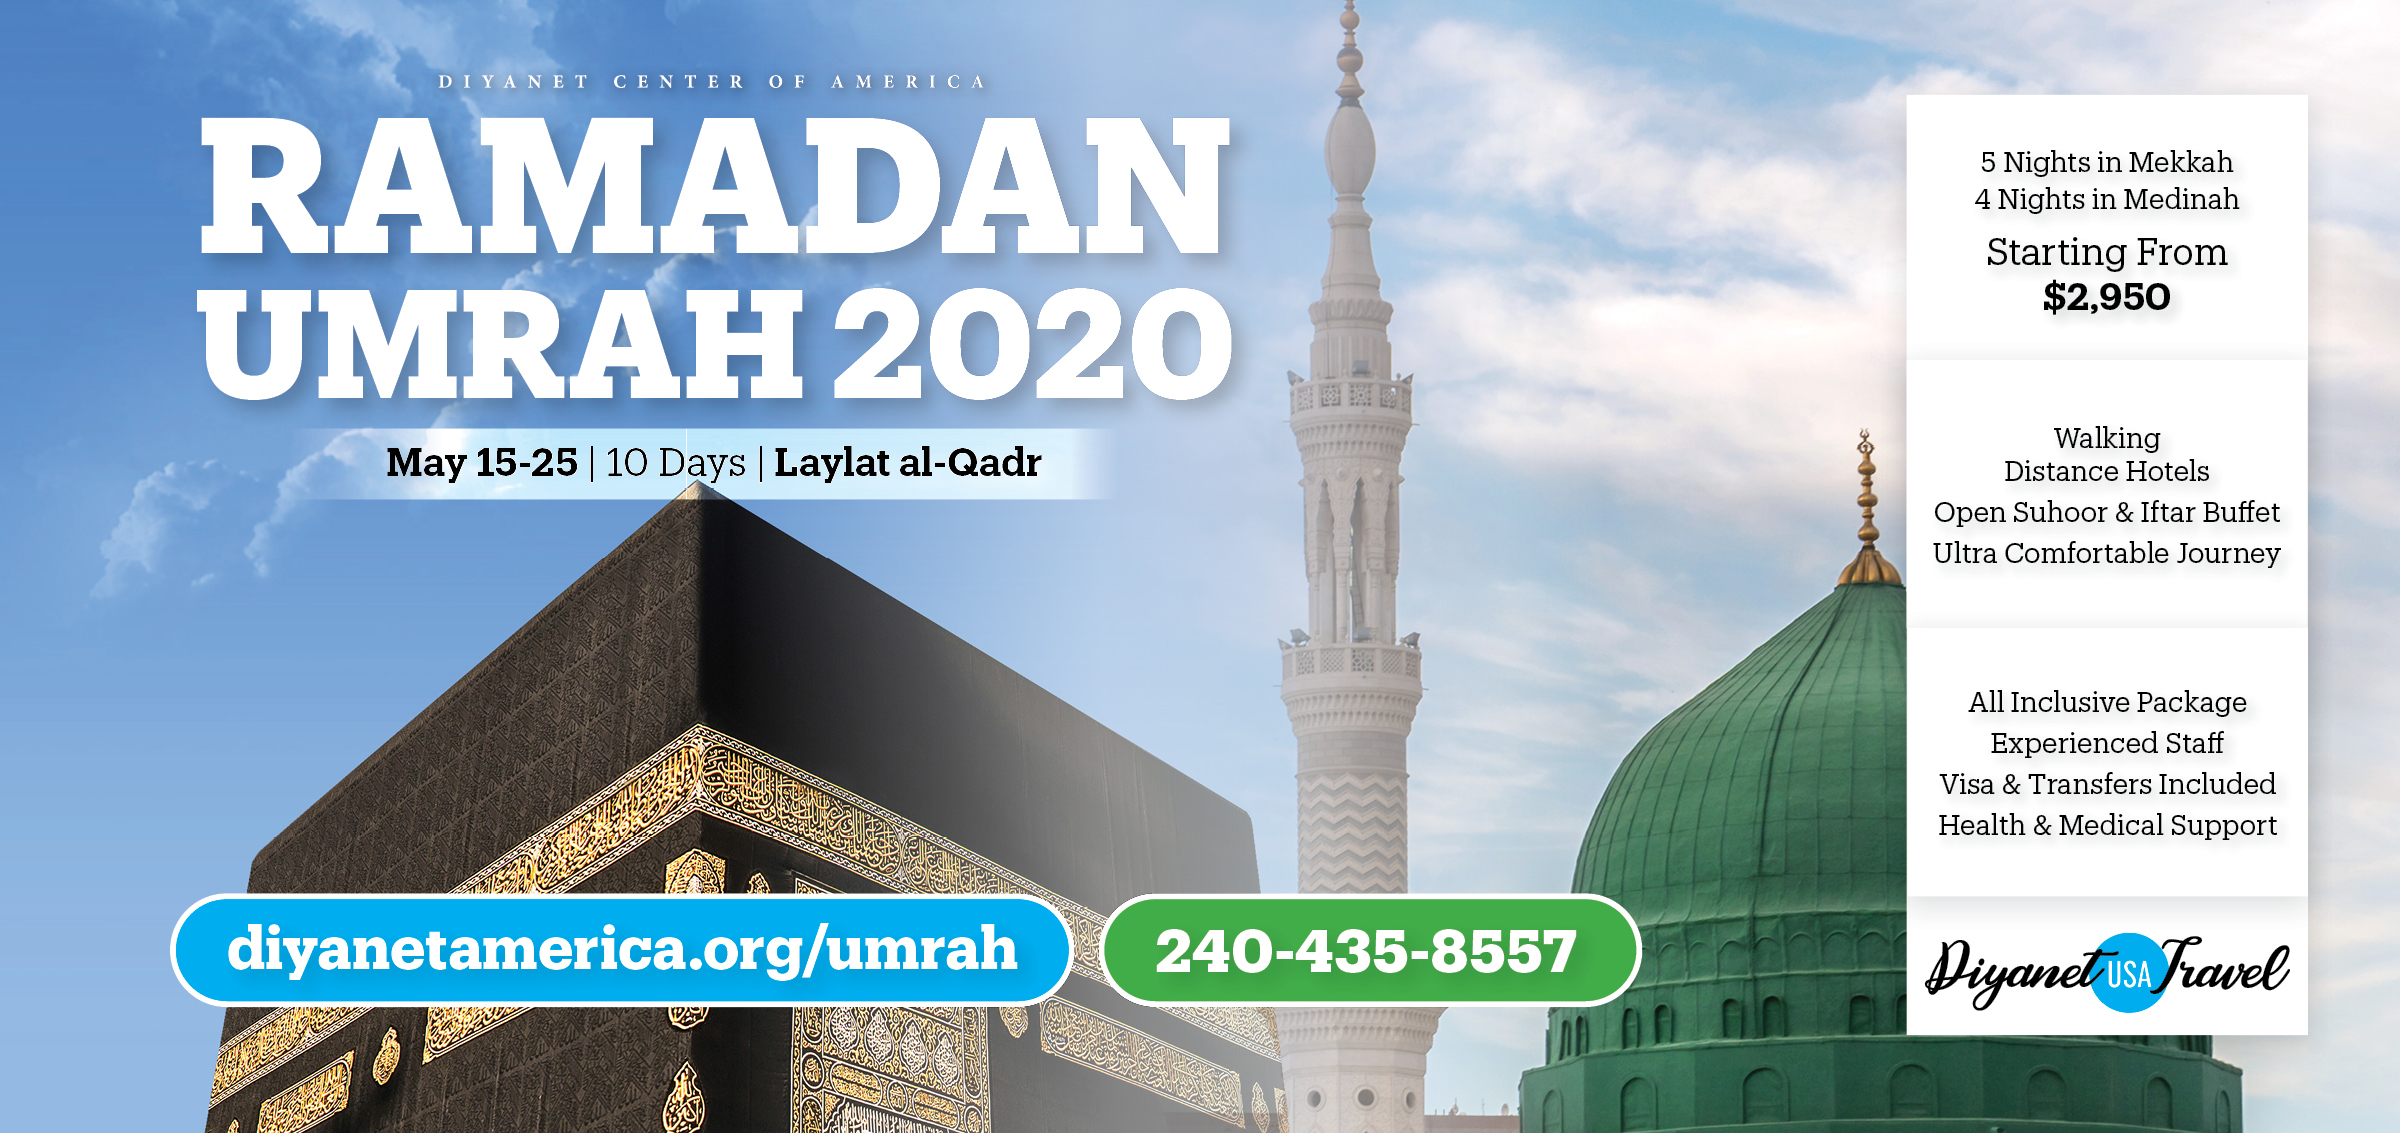 Ramadan Umrah 2020 by Diyanet USA Travel & Diyanet Center of America